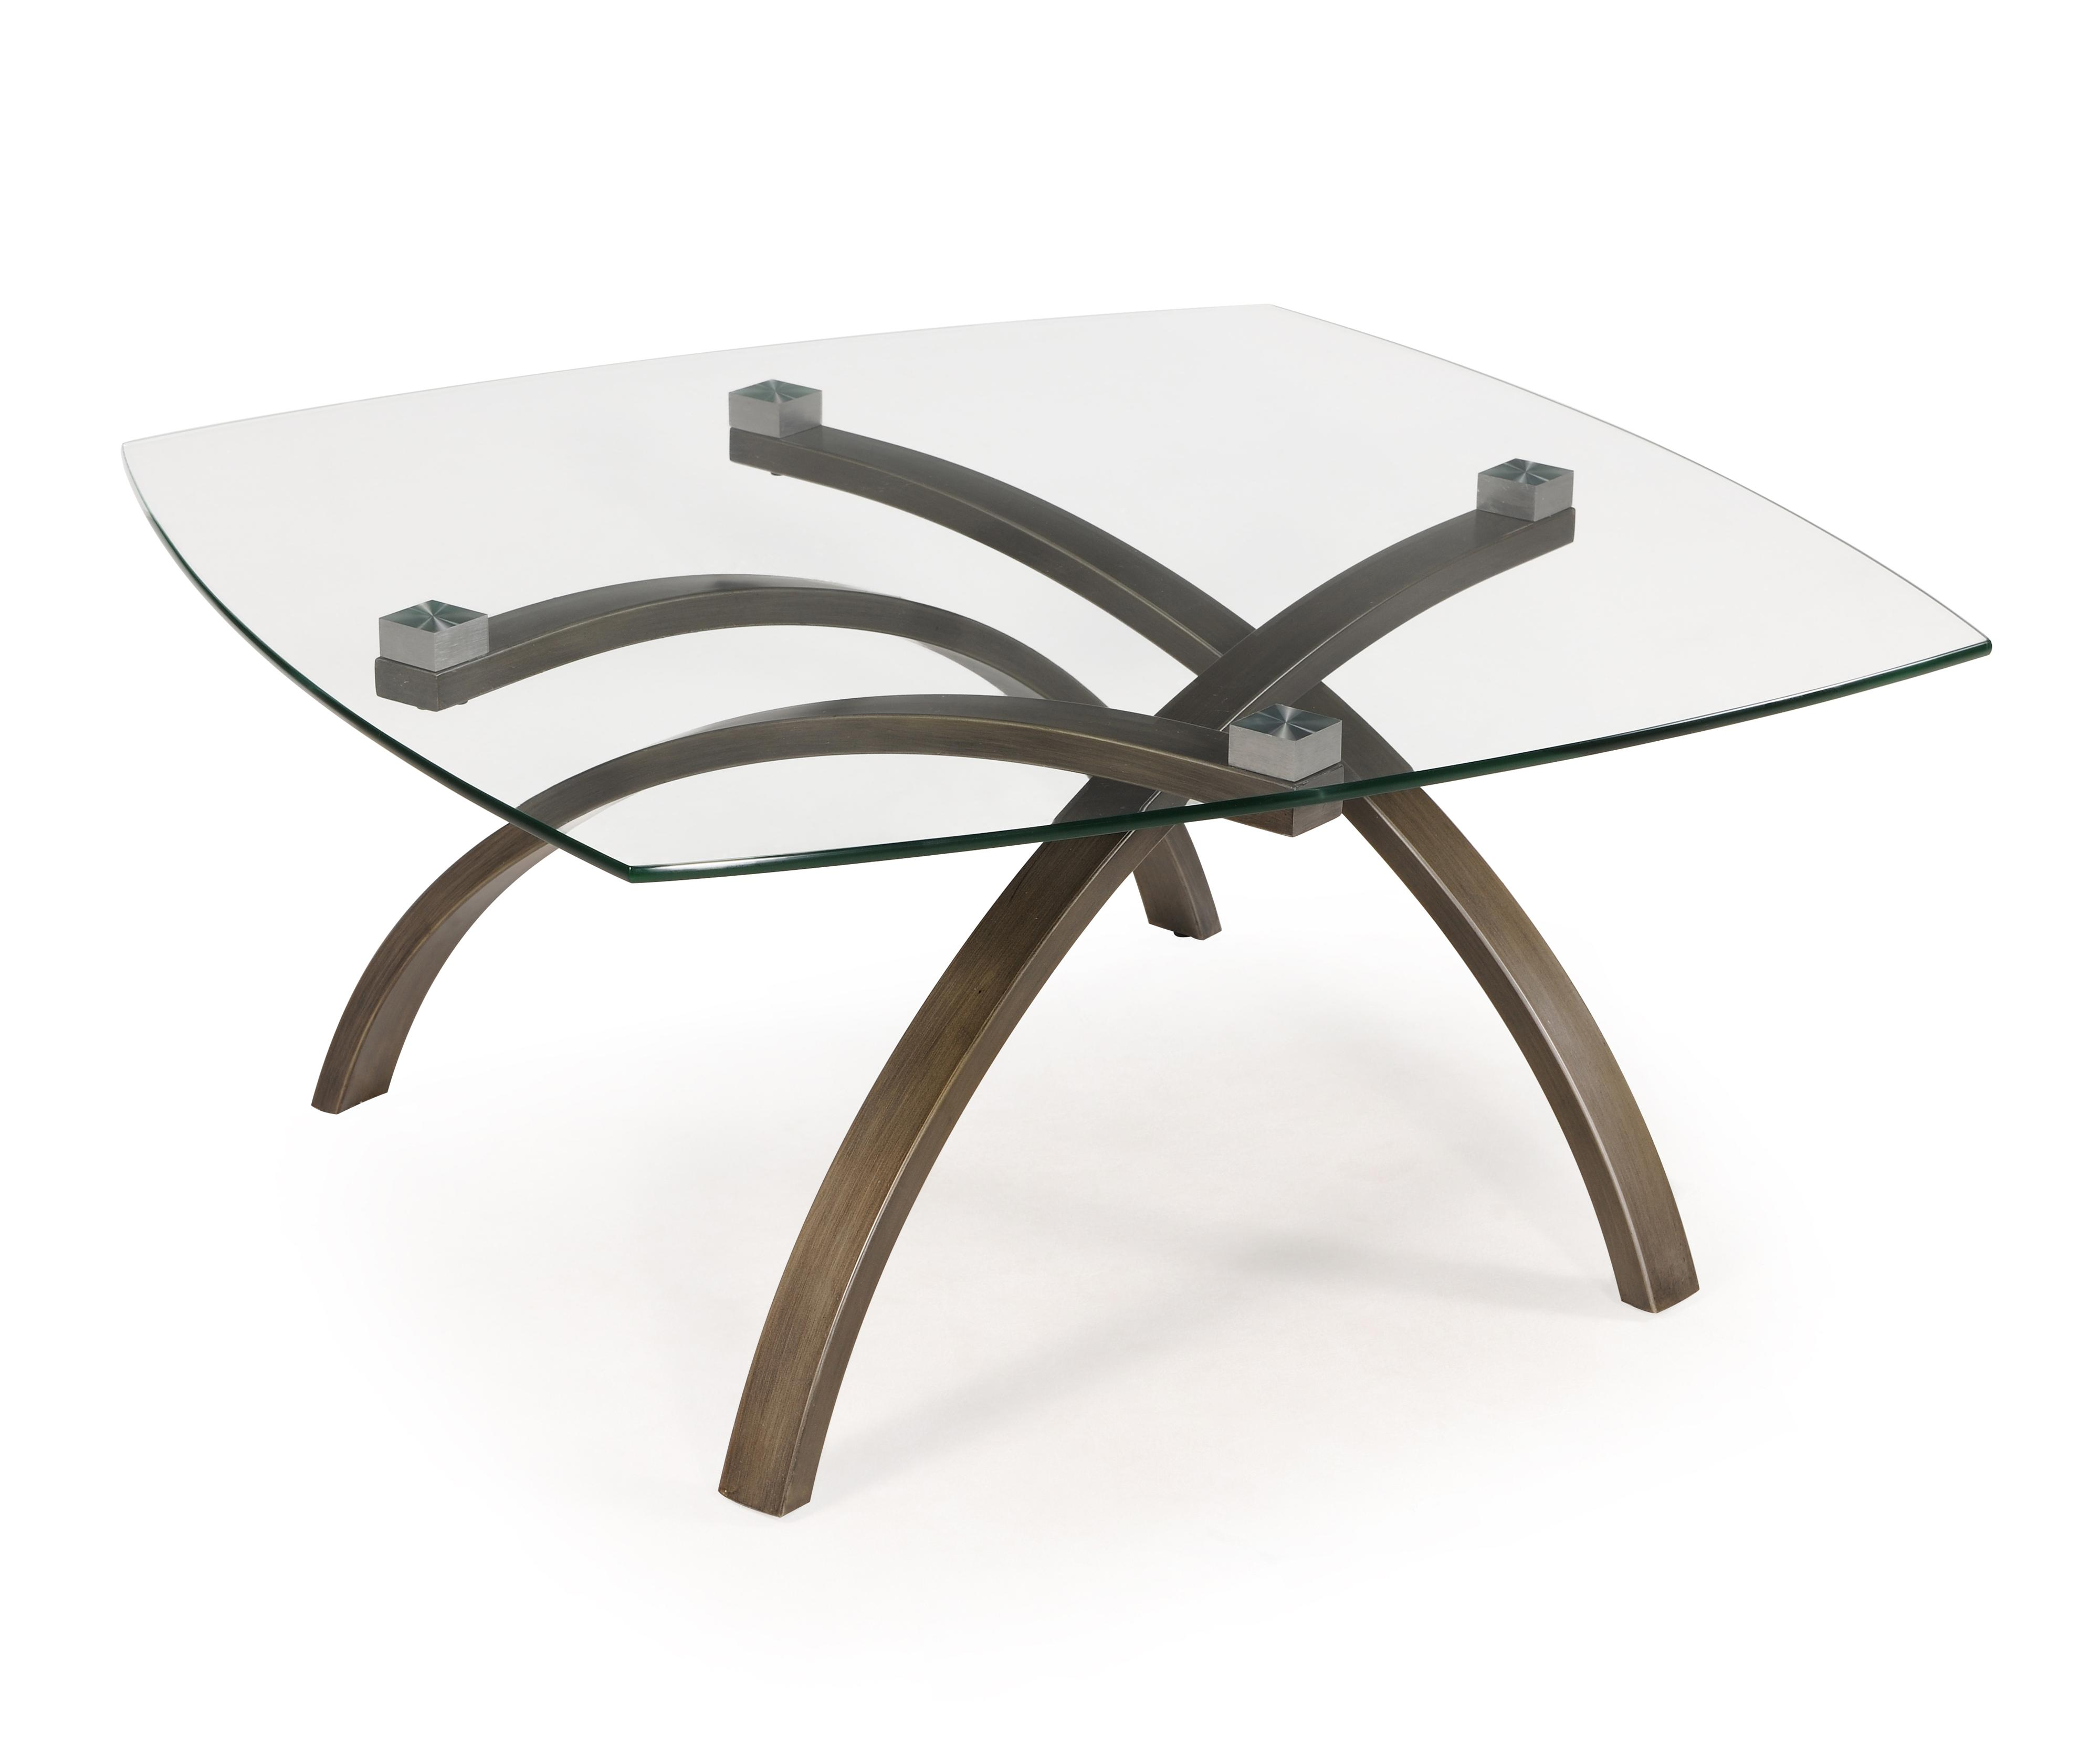 Belfort Select Frisco Square Cocktail Table - Item Number: T2700-41B+41T